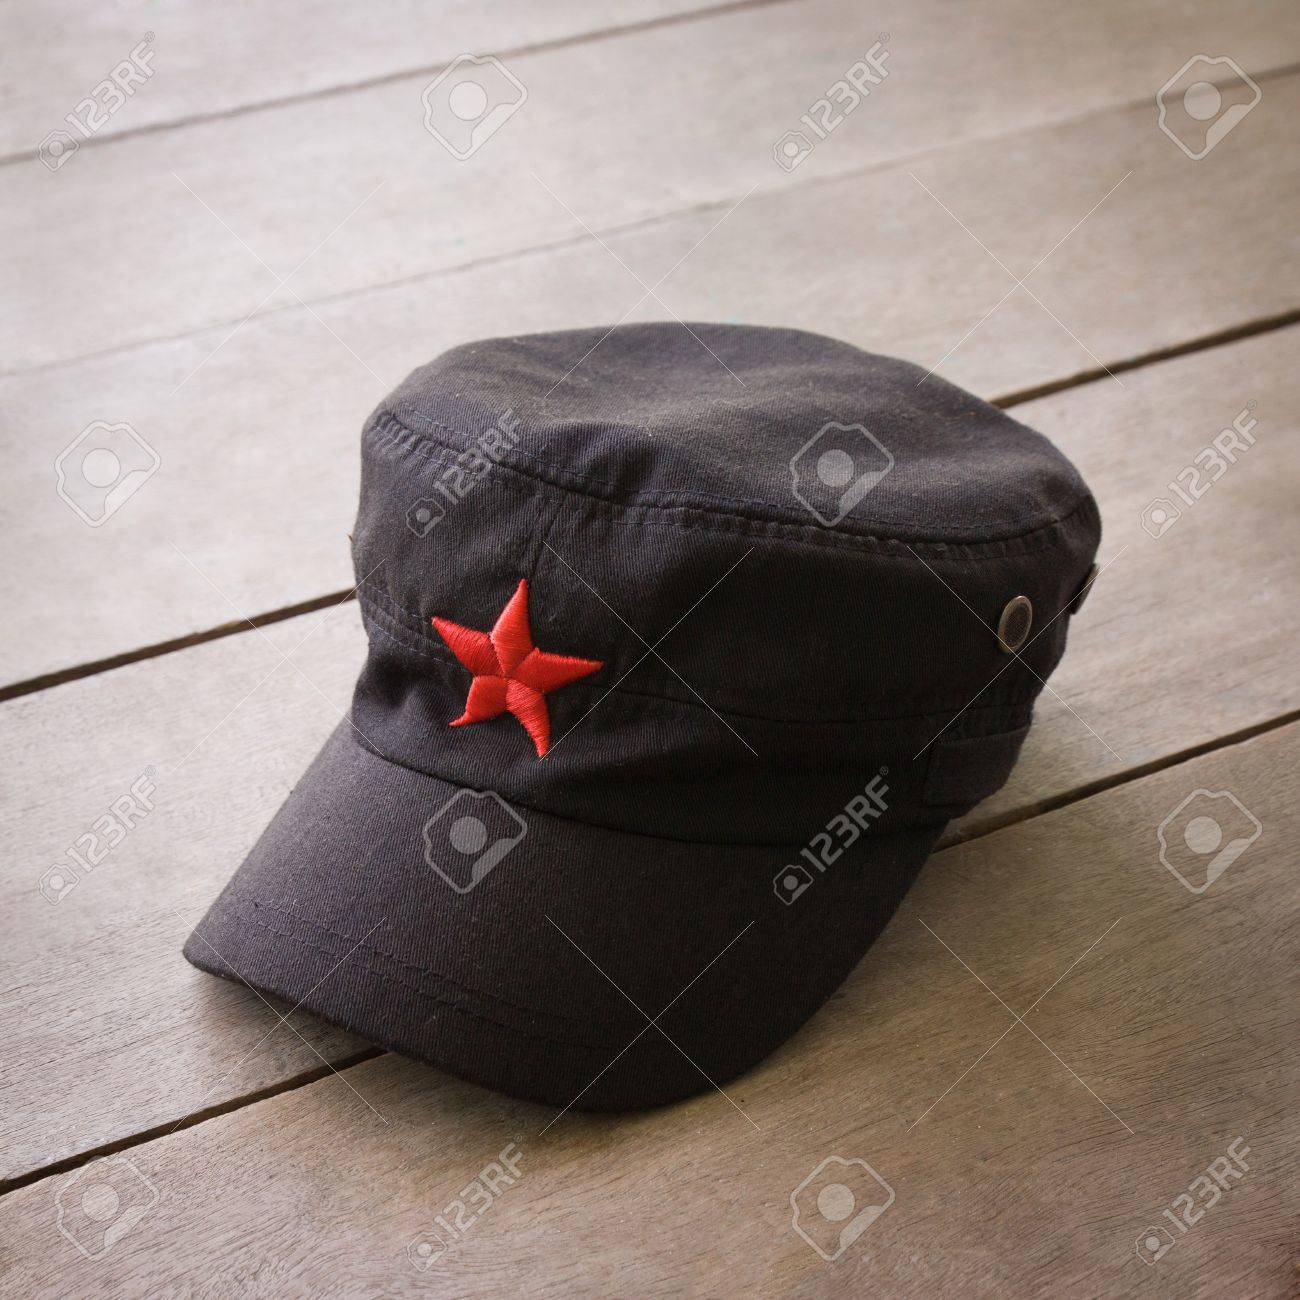 093039276 communist hat and red star on wooden floor